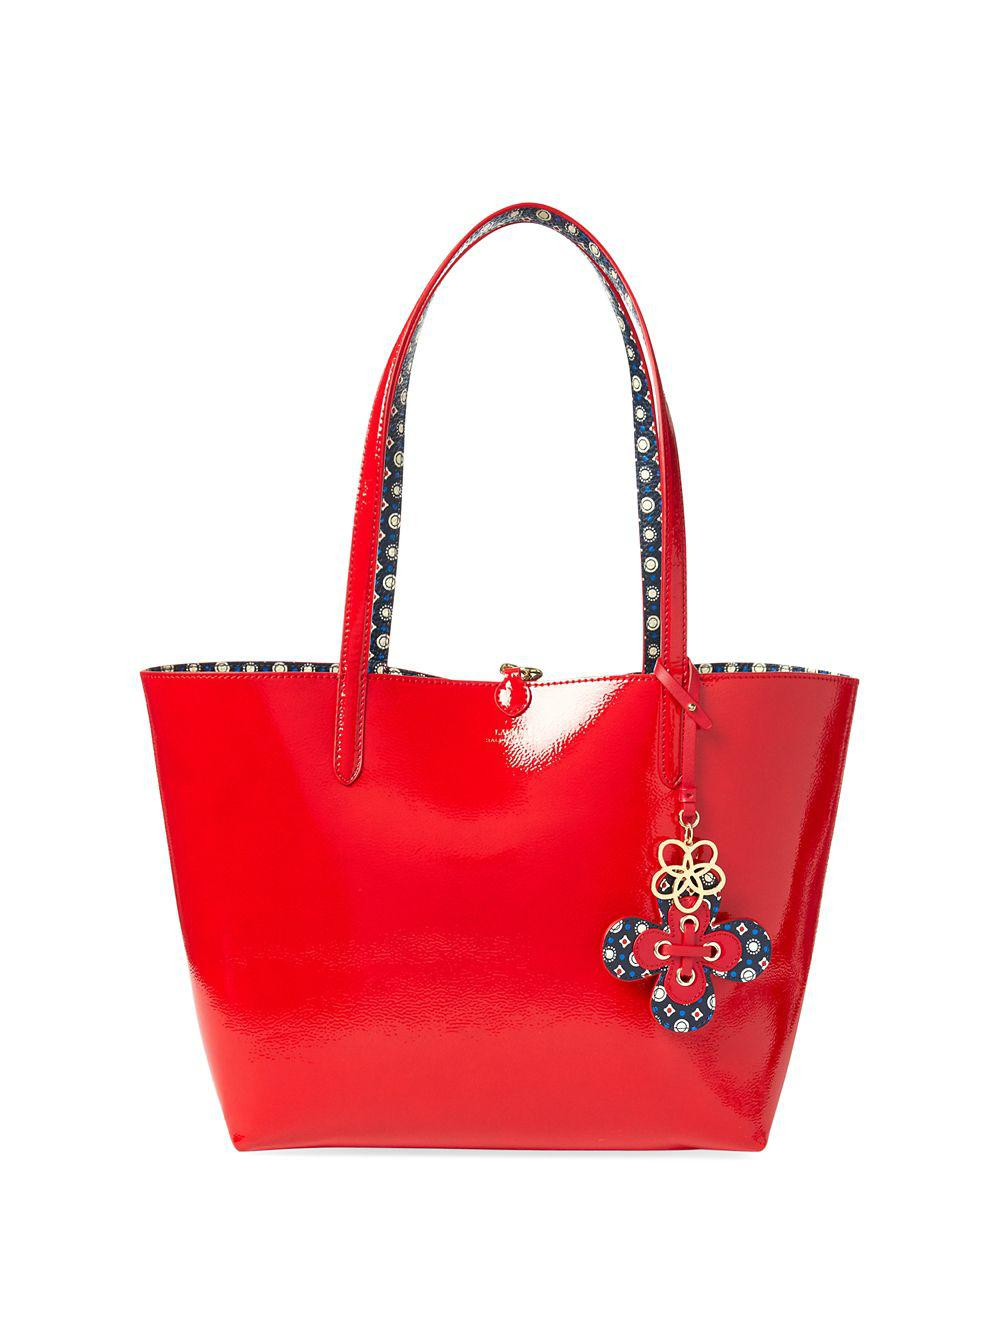 150de5a5a9 Lauren By Ralph Lauren Reversible Tote Bag In Red And Blue Geometric ...